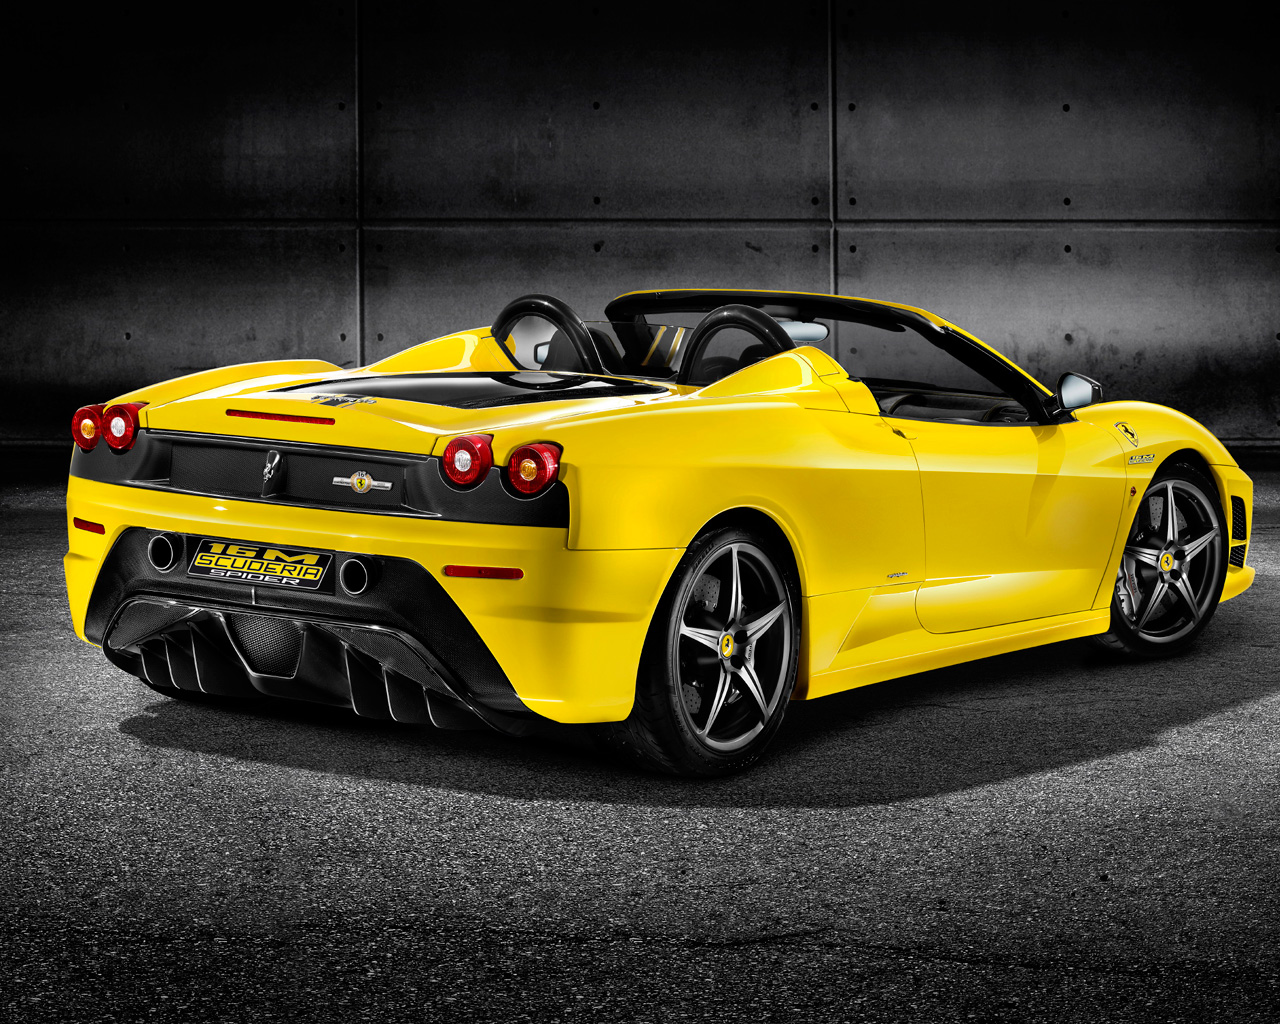 2012 Ferrari 458 Spider equipped with a 4.5-liter V8 engine, this ...